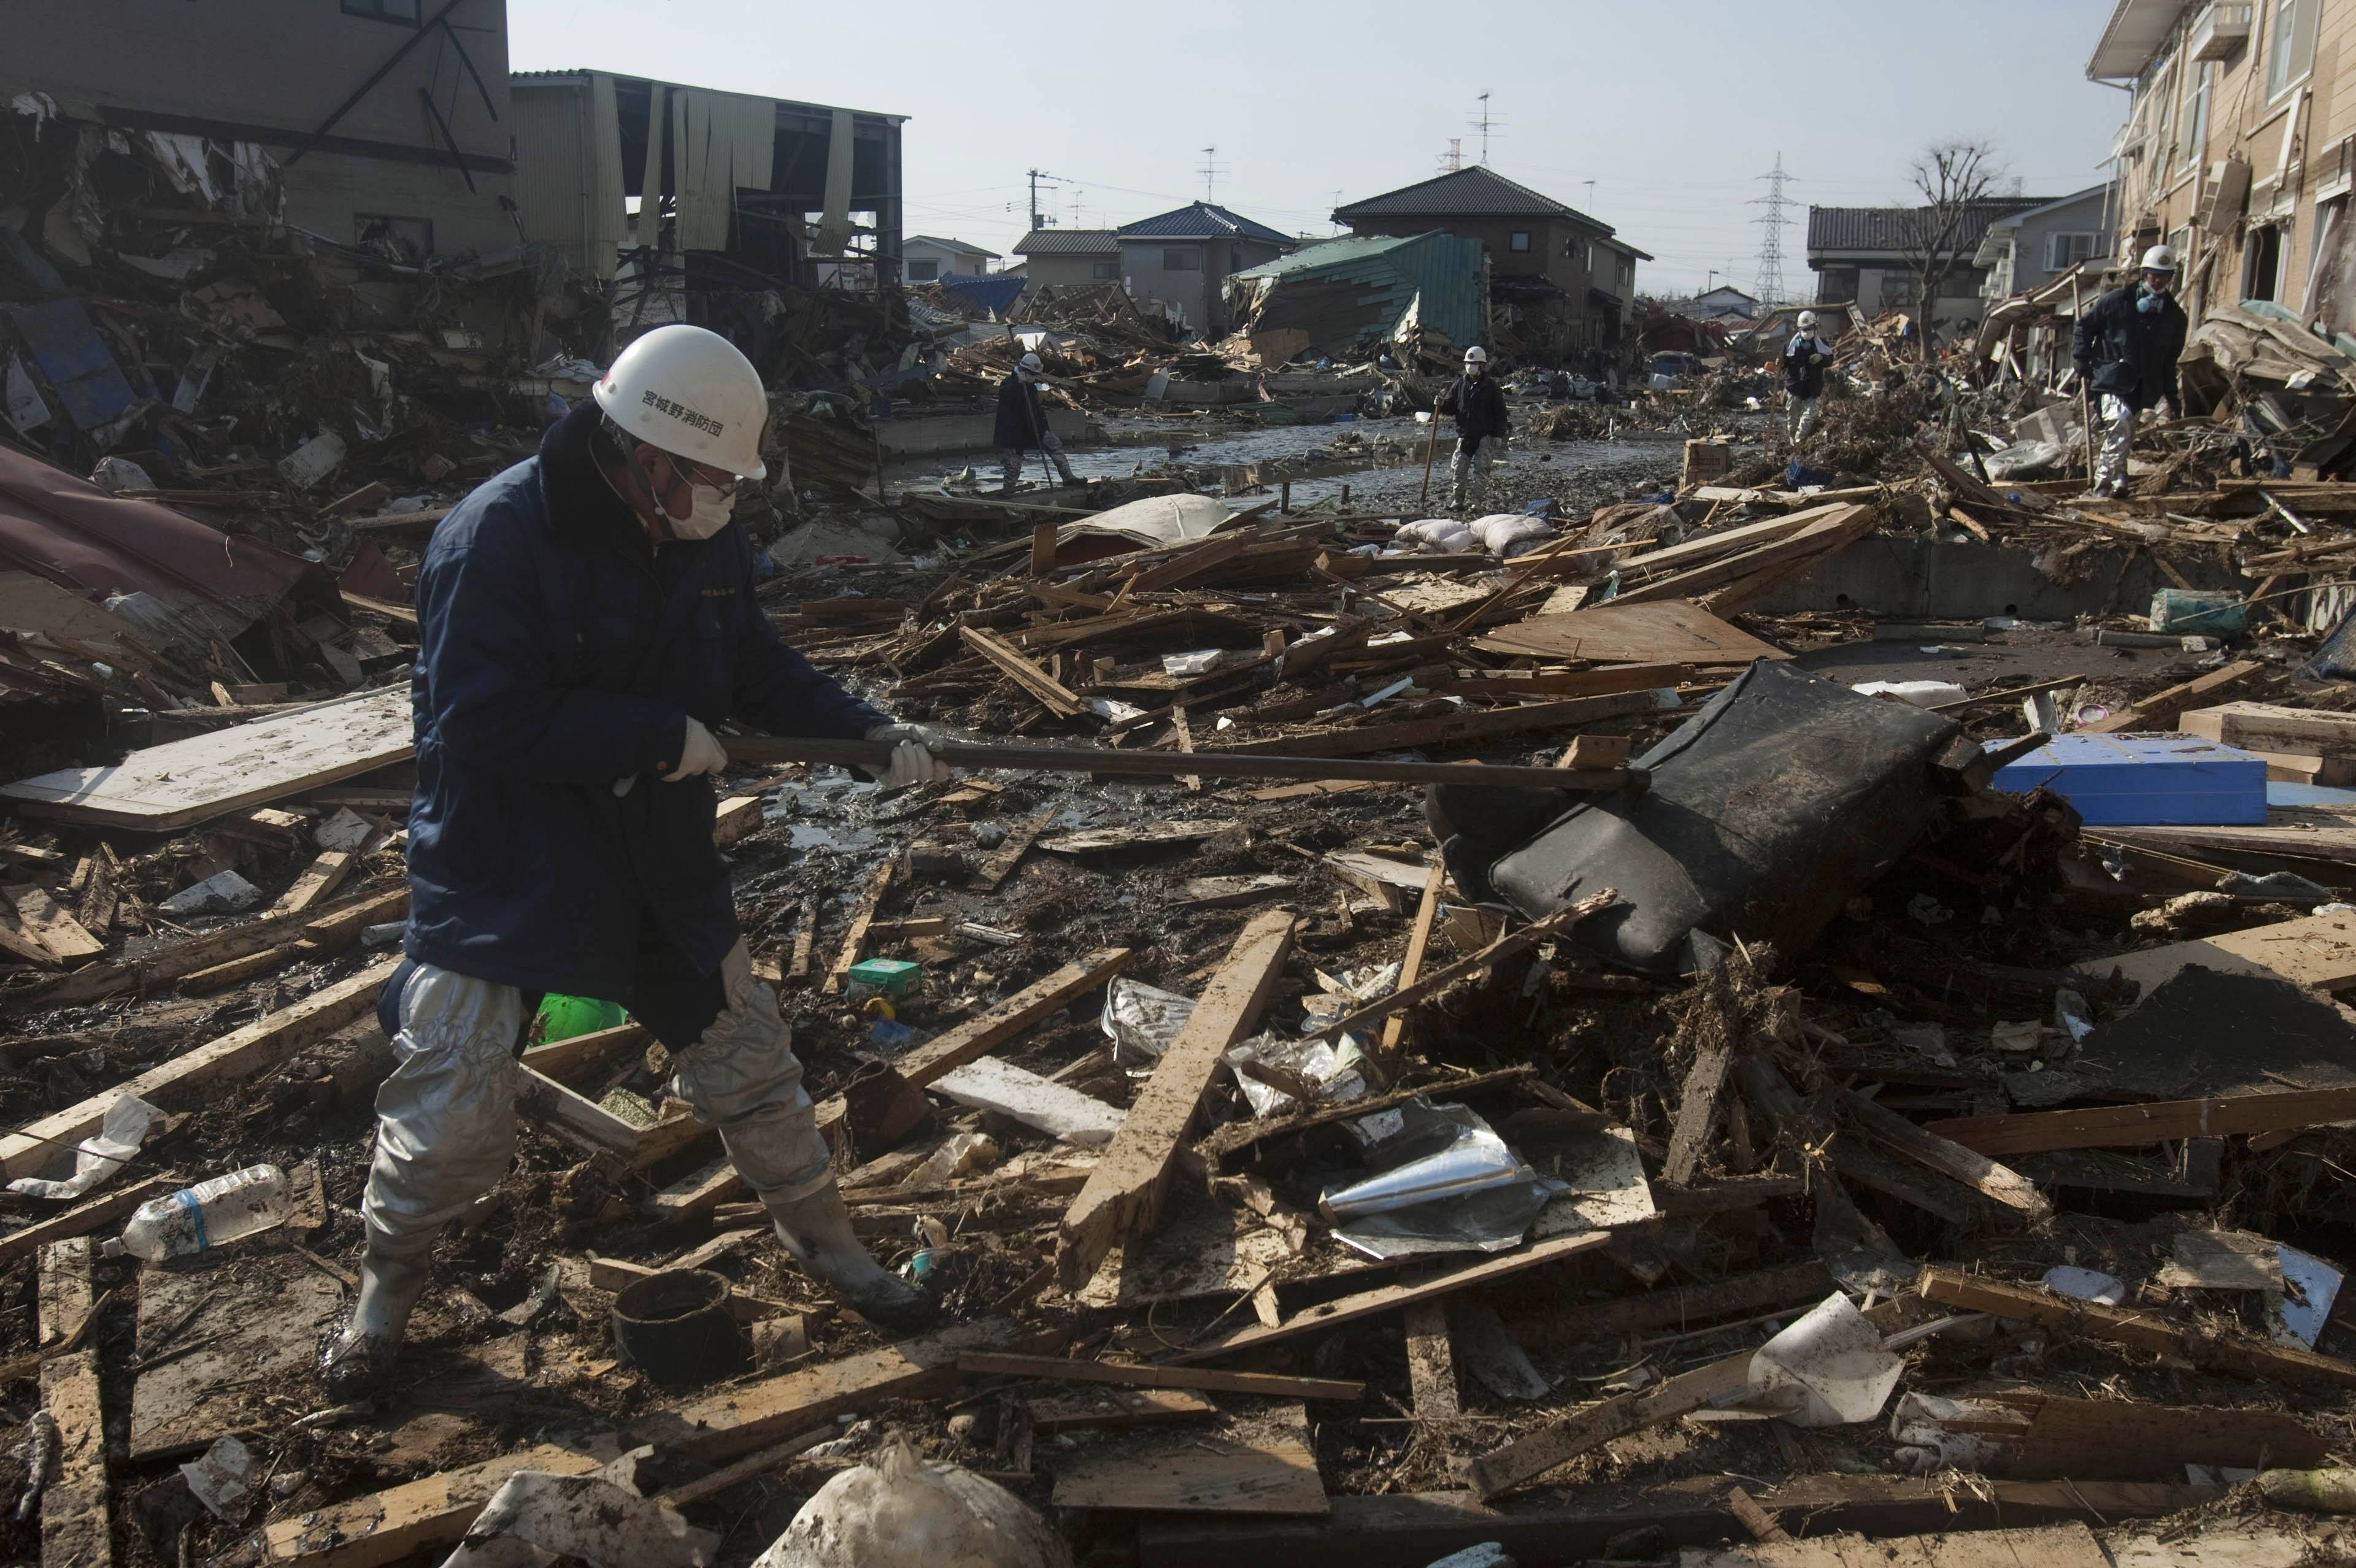 Japanese recovery teams search a destroyed area of Sendai, northeastern Japan, Sunday, March 13, 2011, two days after the area was hit by Friday's catastrophic earthquake-triggered tsunami.